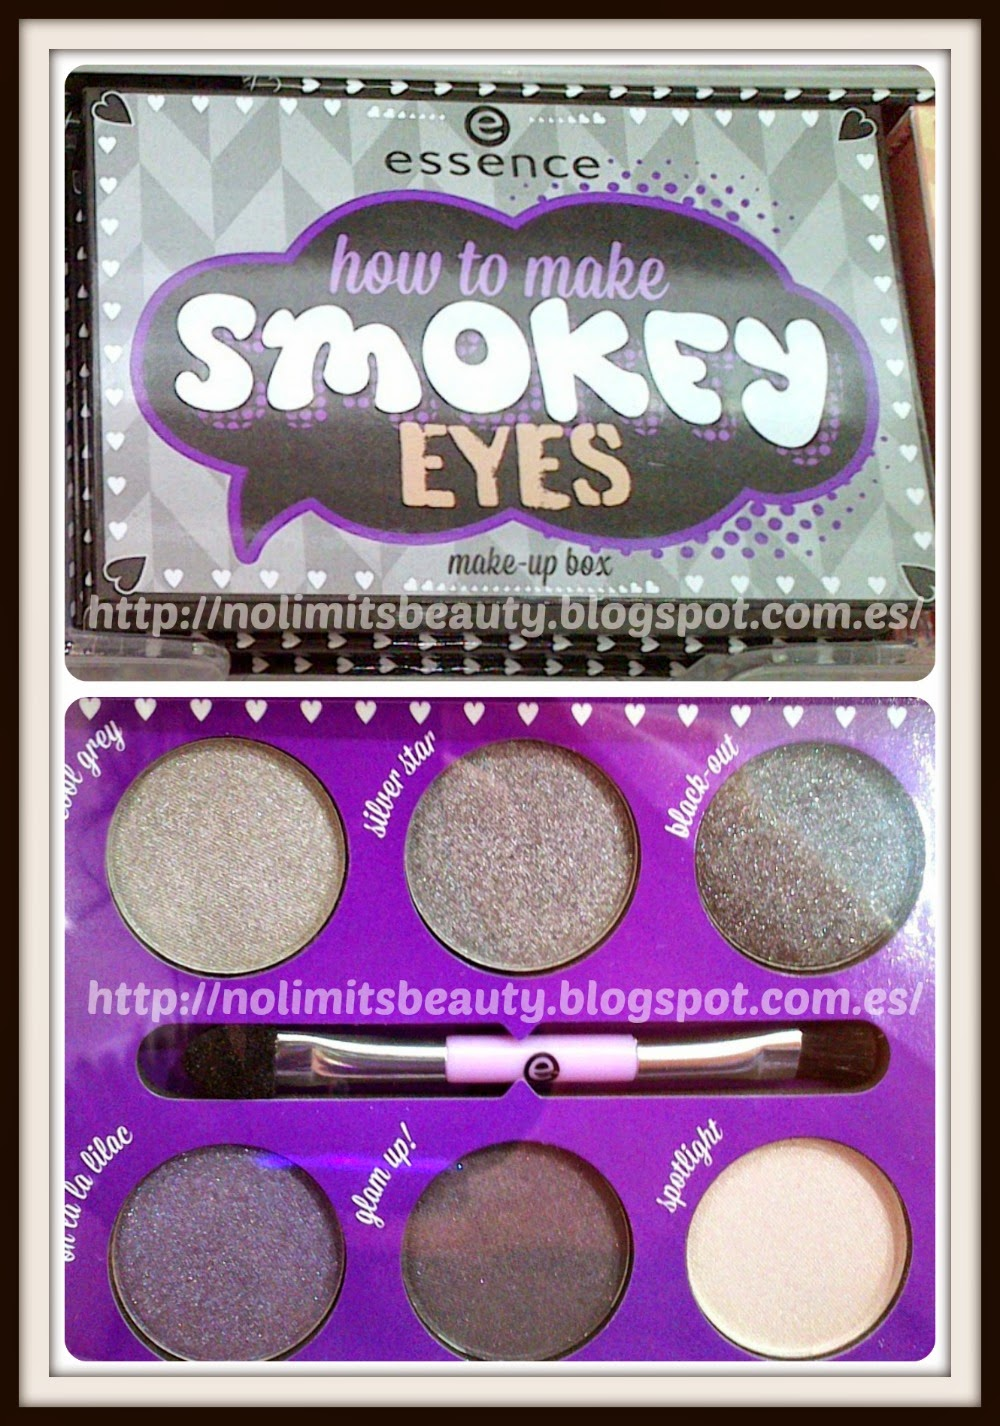 Novedades Essence - Make Up Boxes: How to make Smokey Eyes